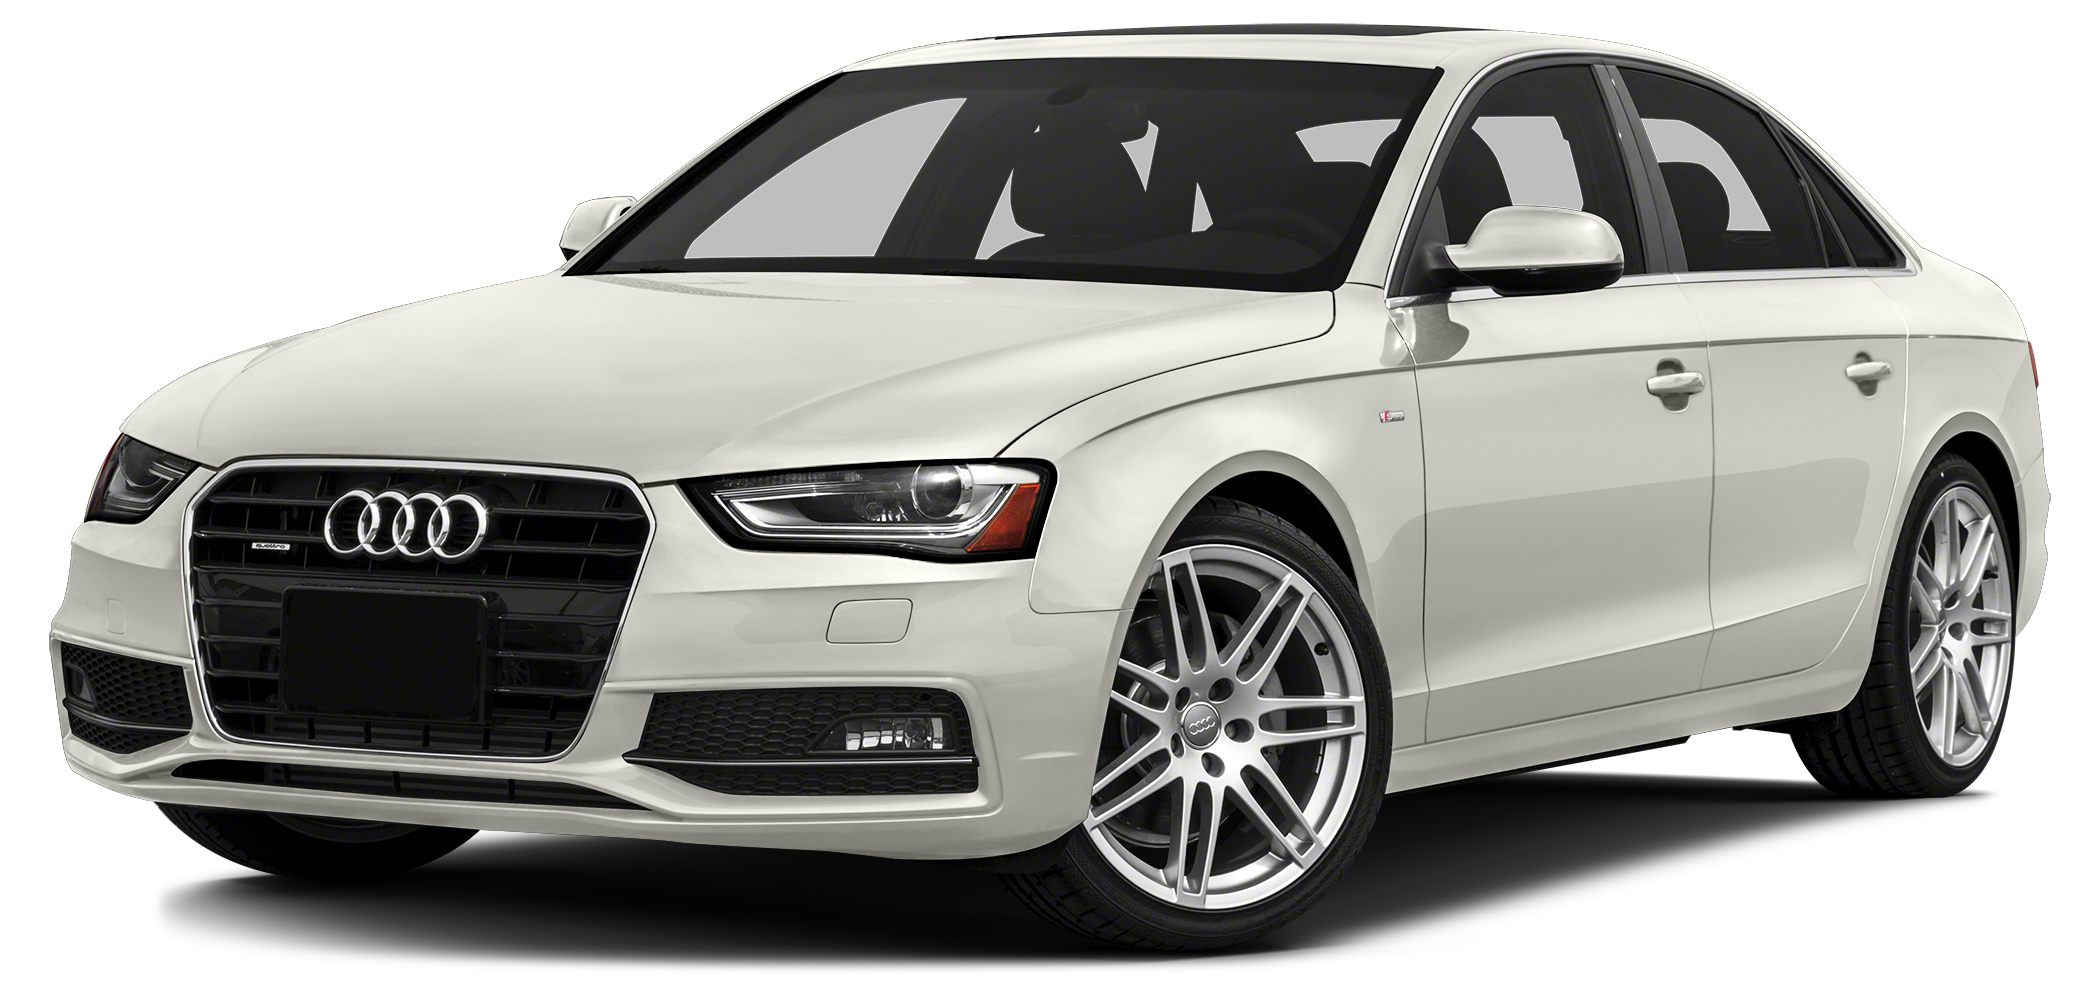 2014 Audi A4 20T Premium Haggle Free Price Low miles Audi A4 with Back-Up Camera Navigation